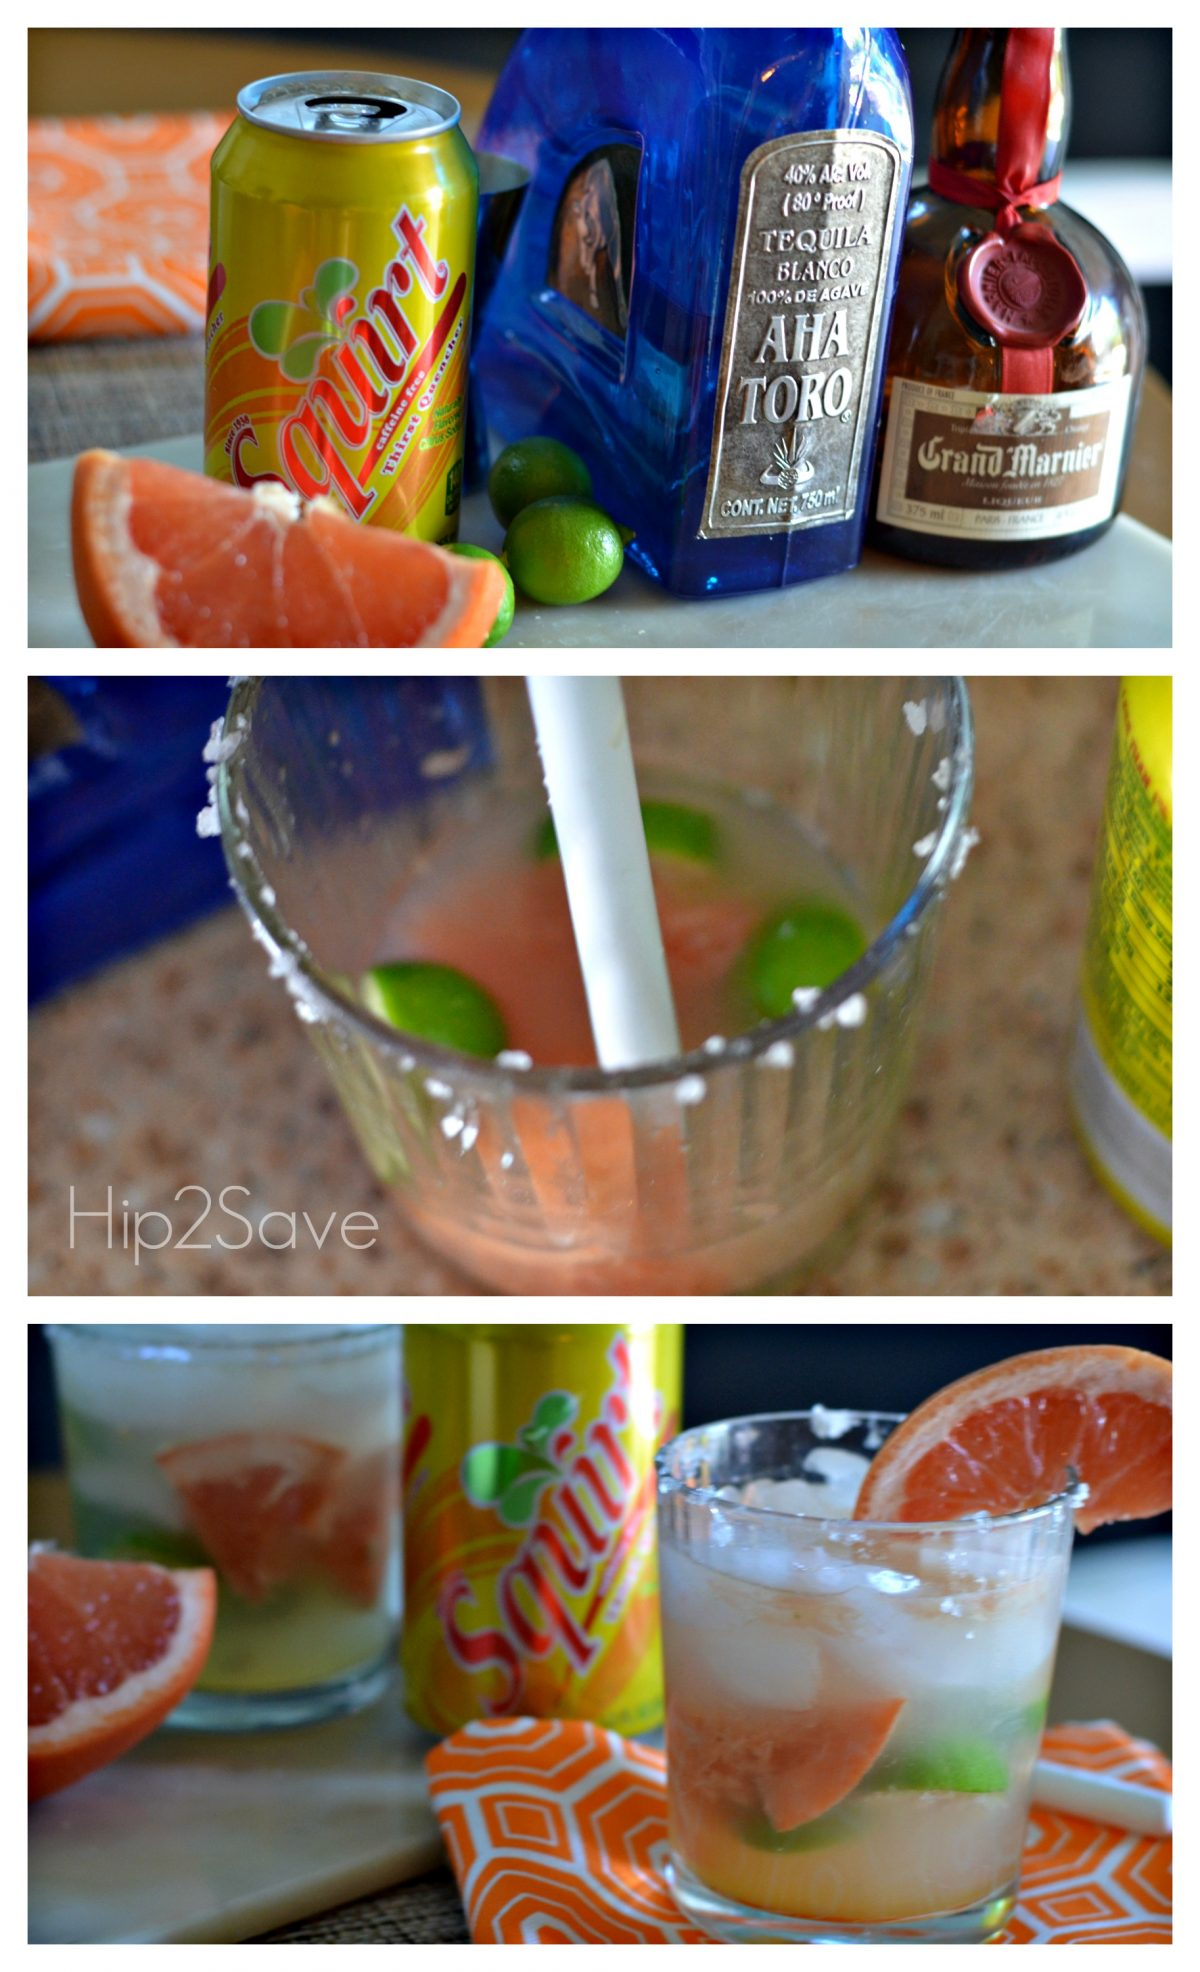 How to make a paloma cocktail hip2Save